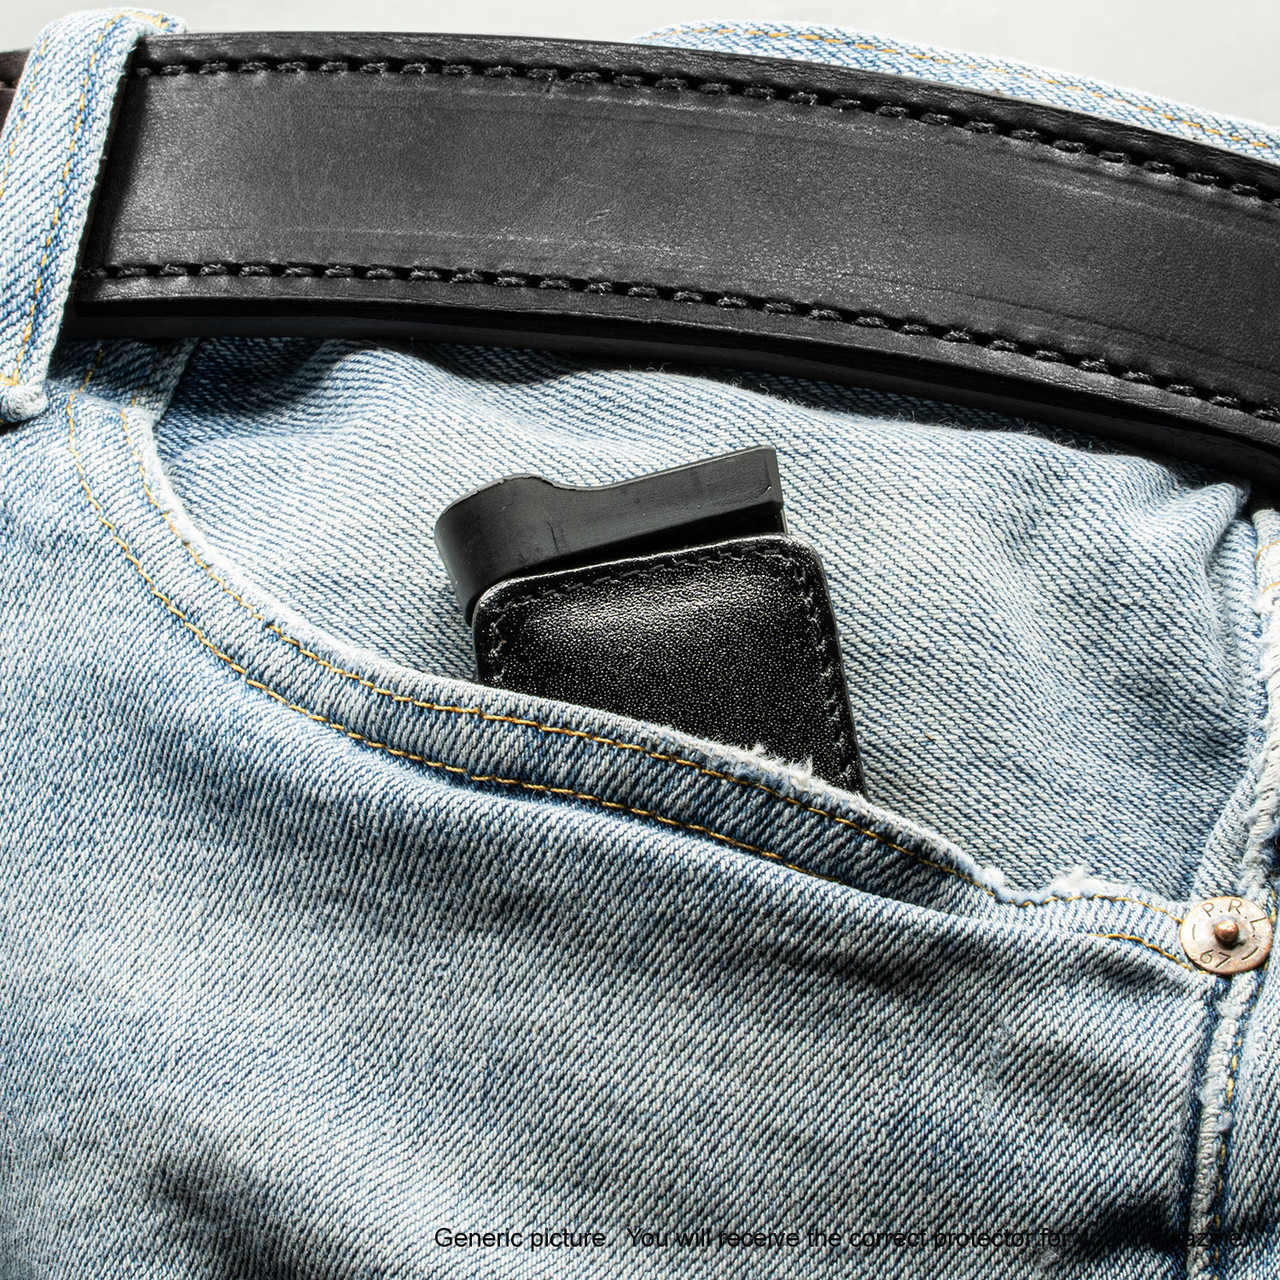 Walther CCP Black Leather Magazine Pocket Protector